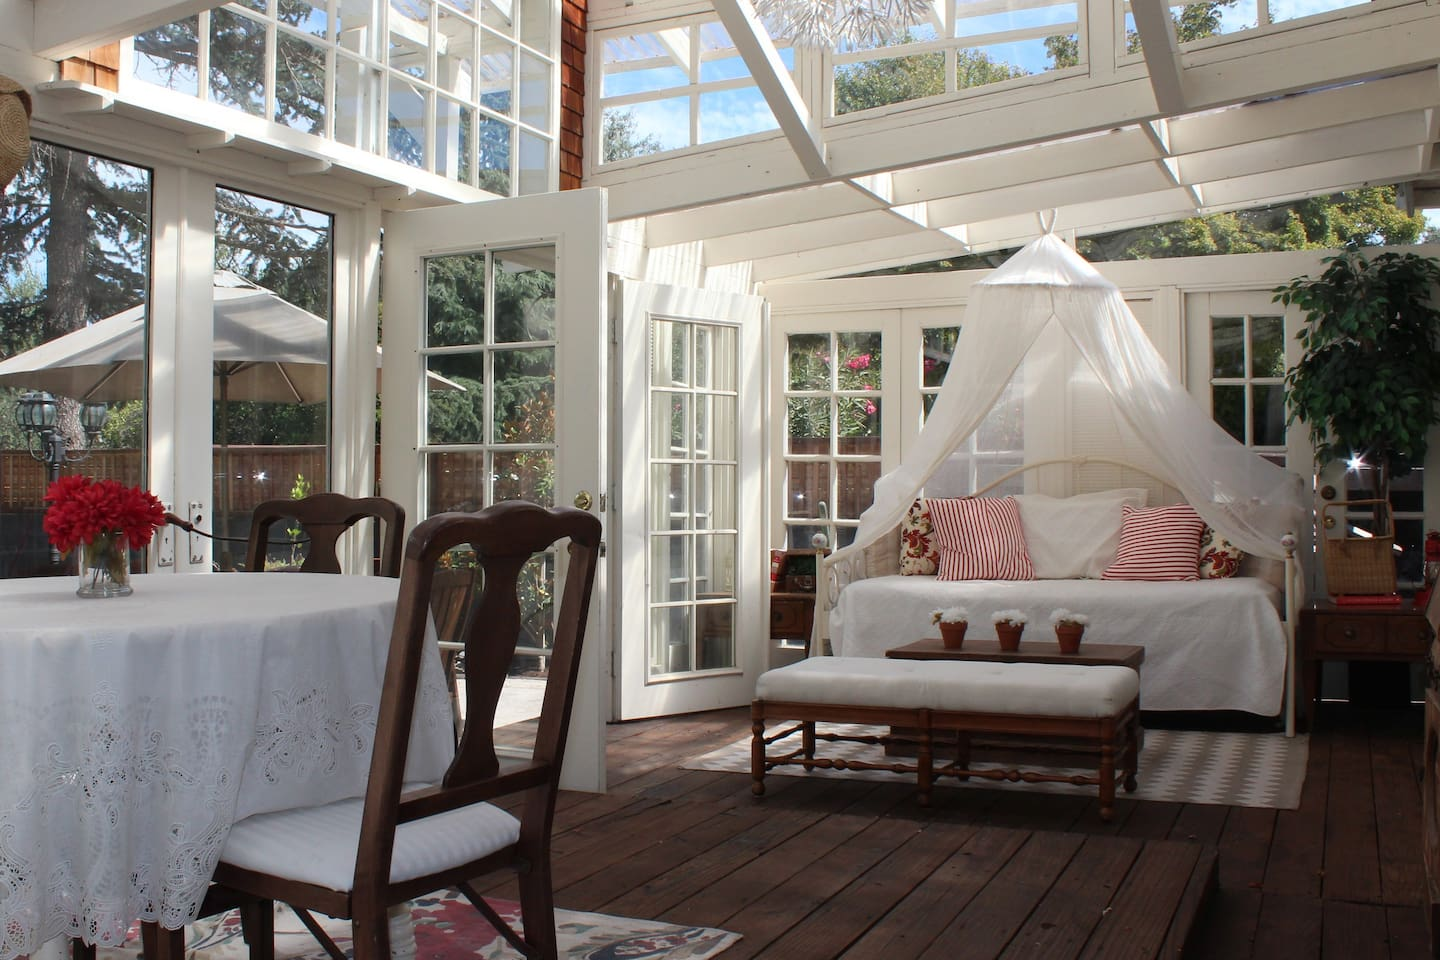 Spend quality time in the sunroom for some R&R.